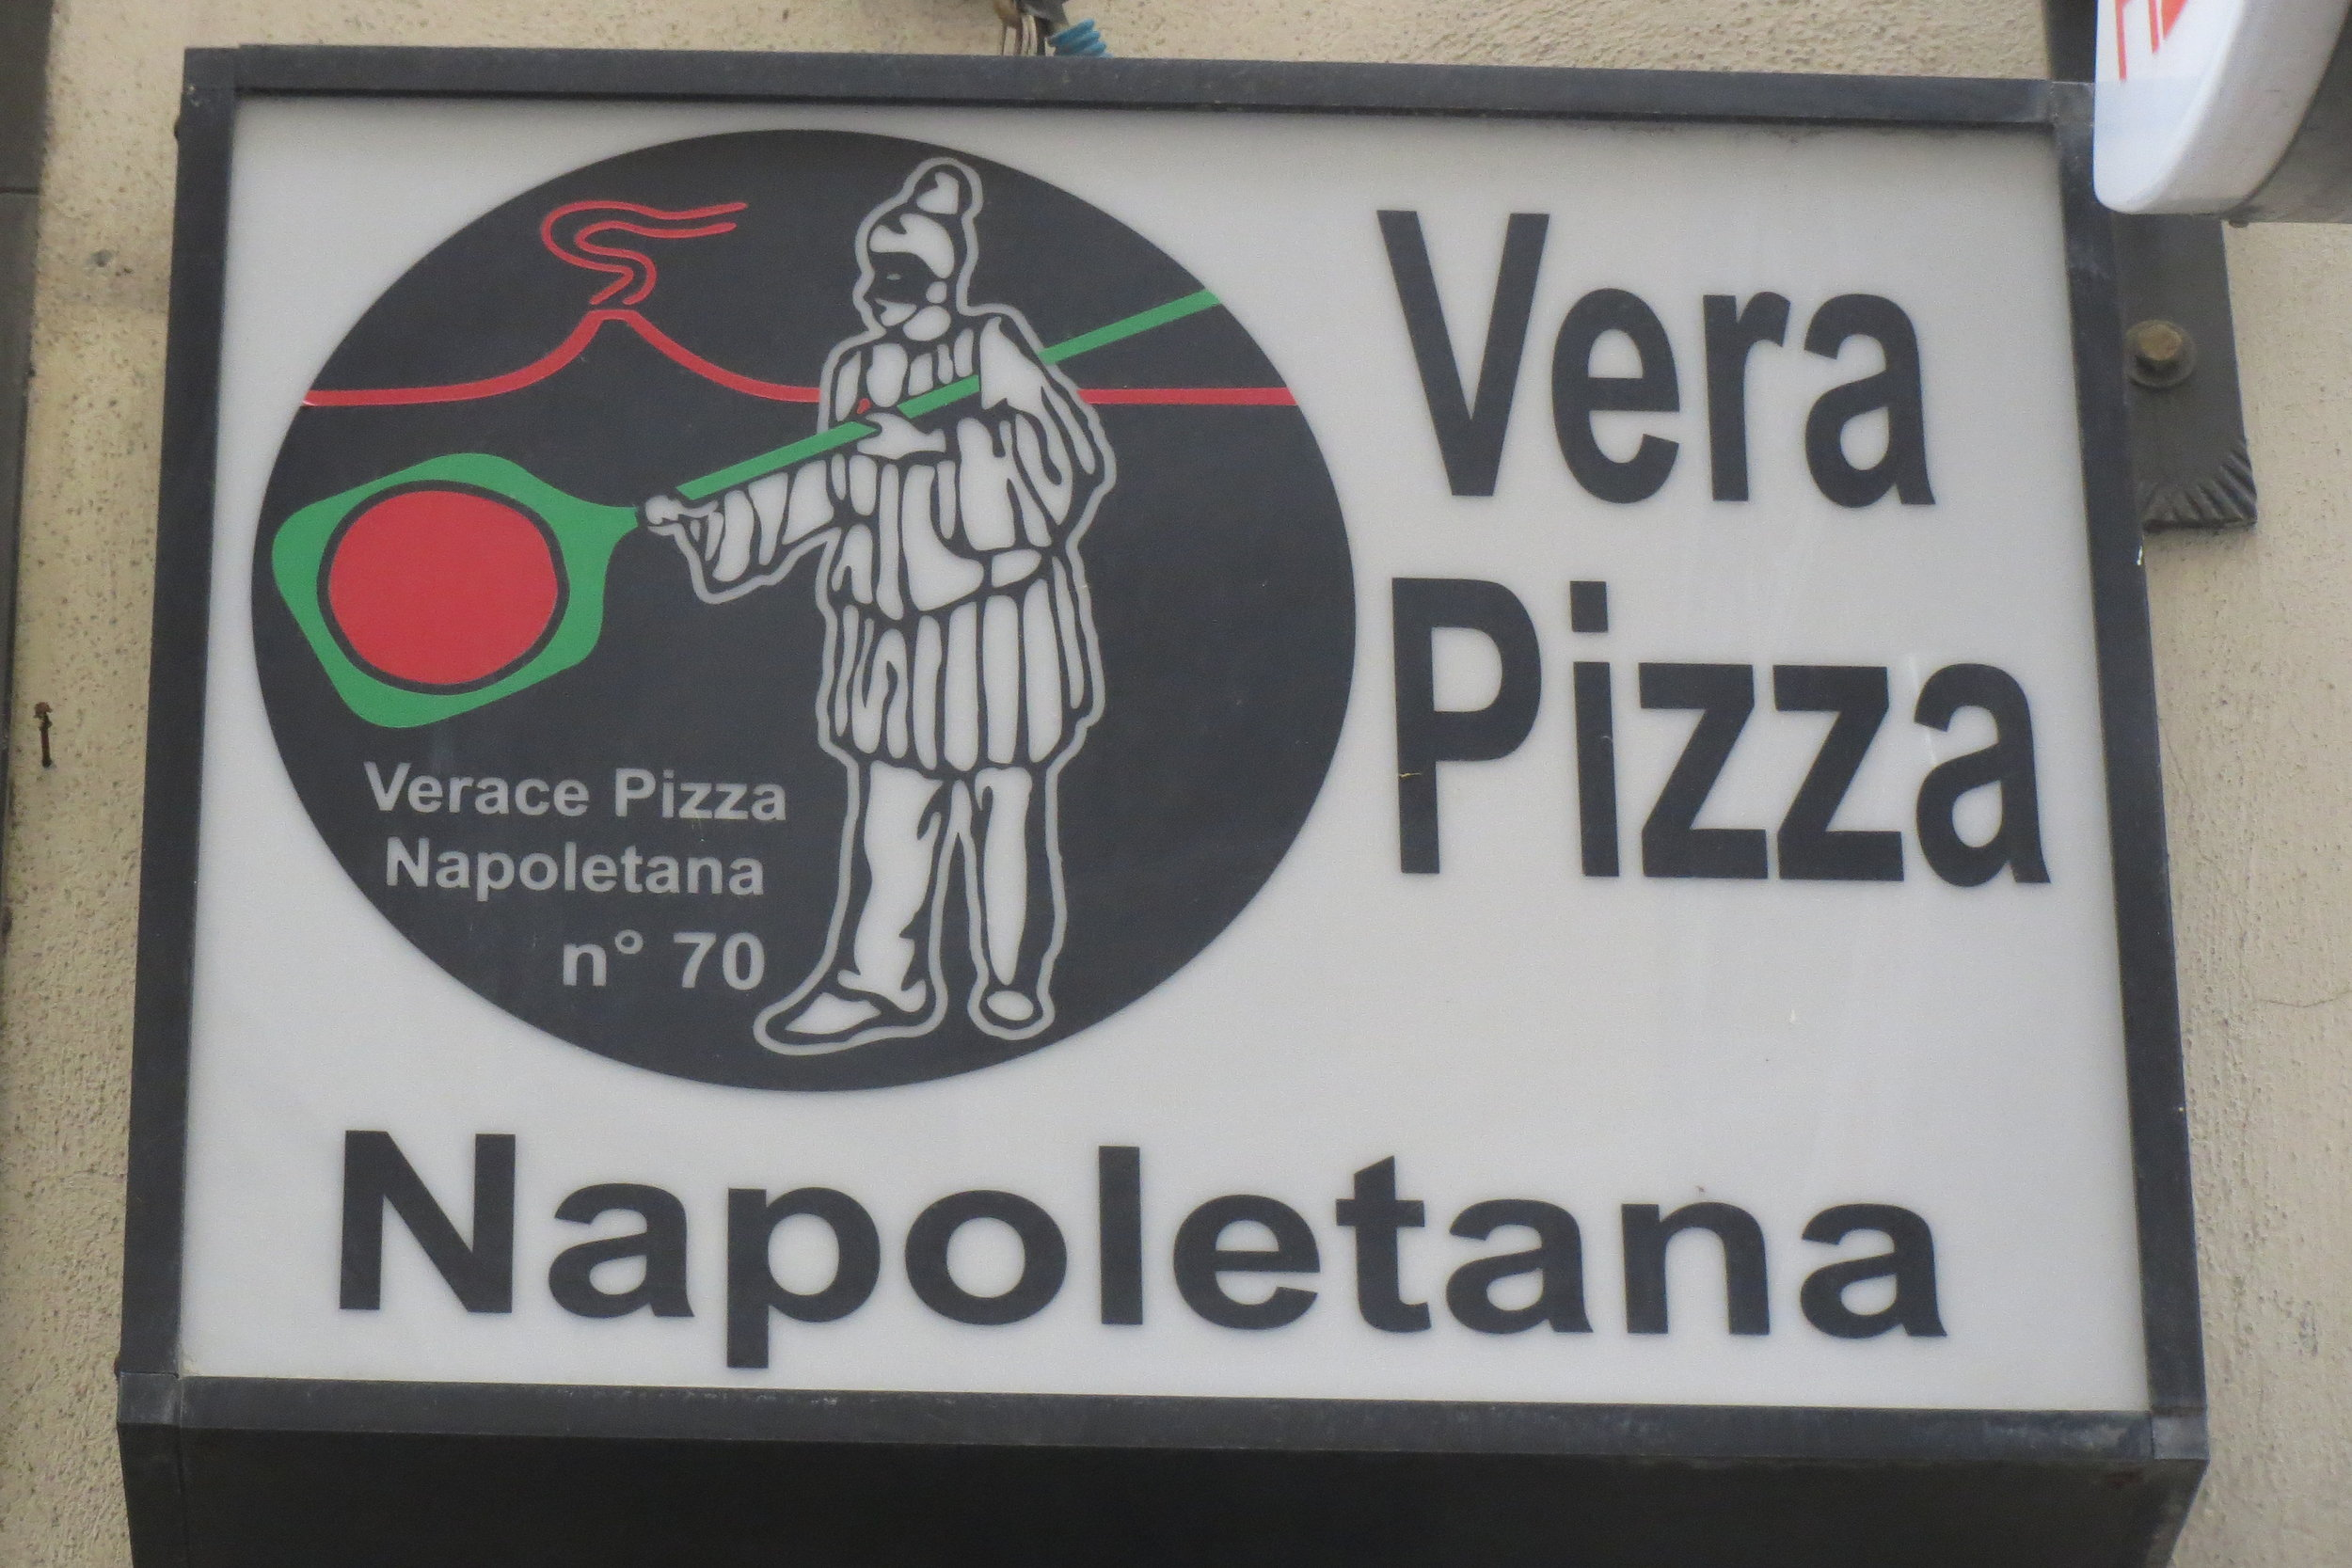 The sign of the association for the real Neapolitan pizza.